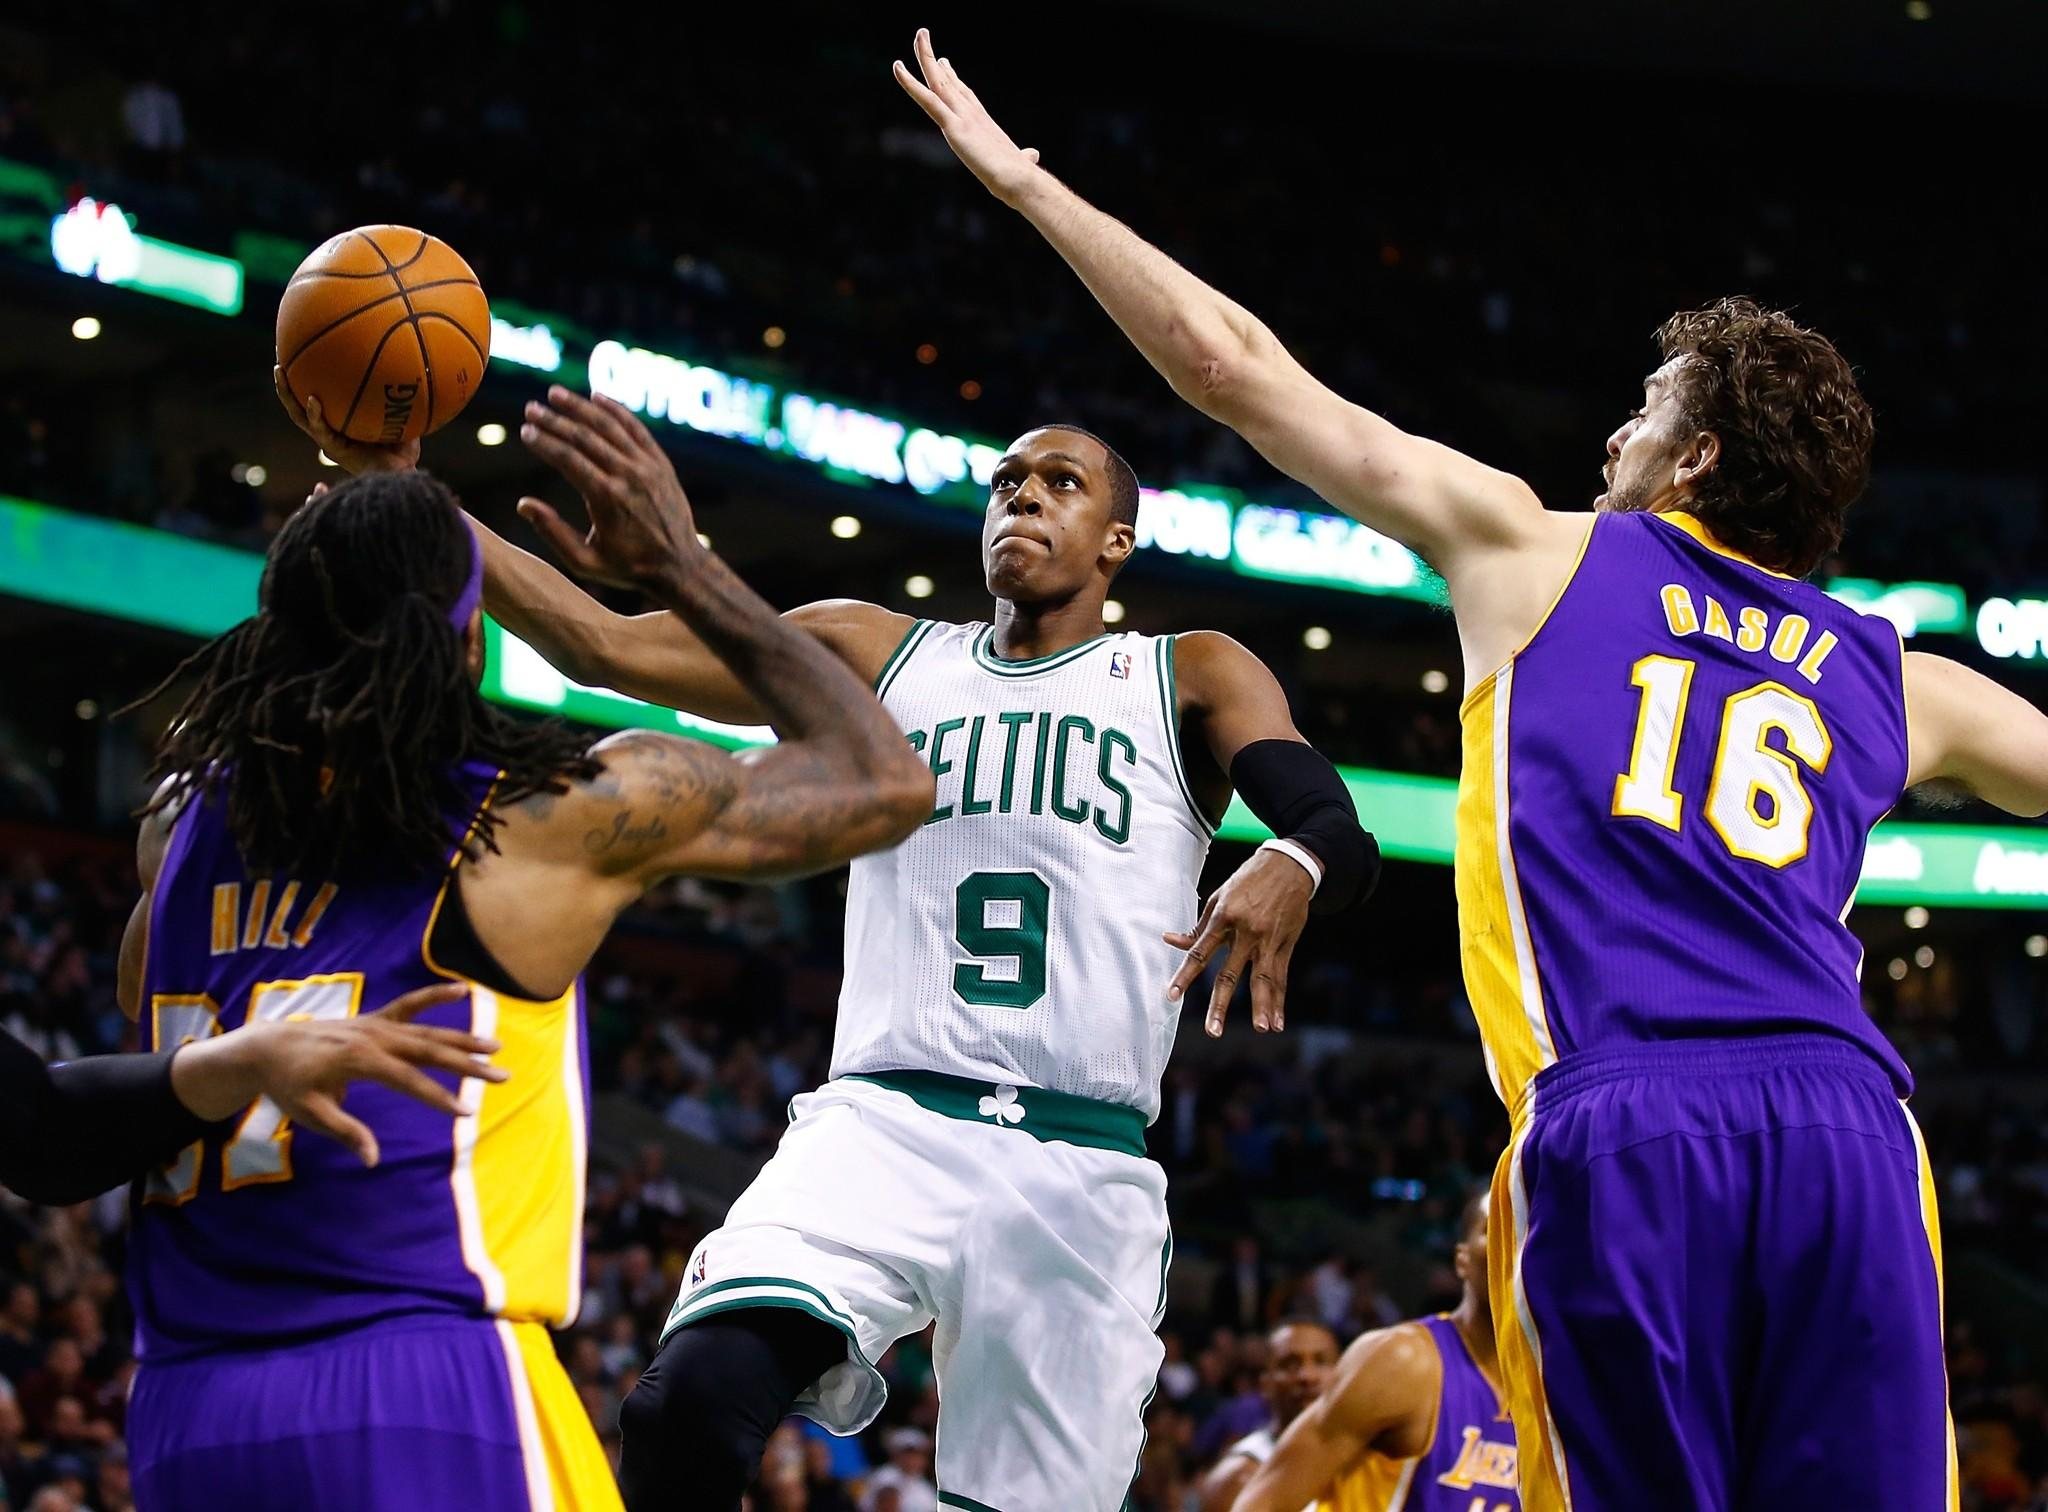 Celtics point guard Rajon Rondo takes the ball to the basket against Lakers big men Pau Gasol and Jordan Hill during a game earlier this season. Rondo and Celtics are in the draft lottery hunt with the Lakers.